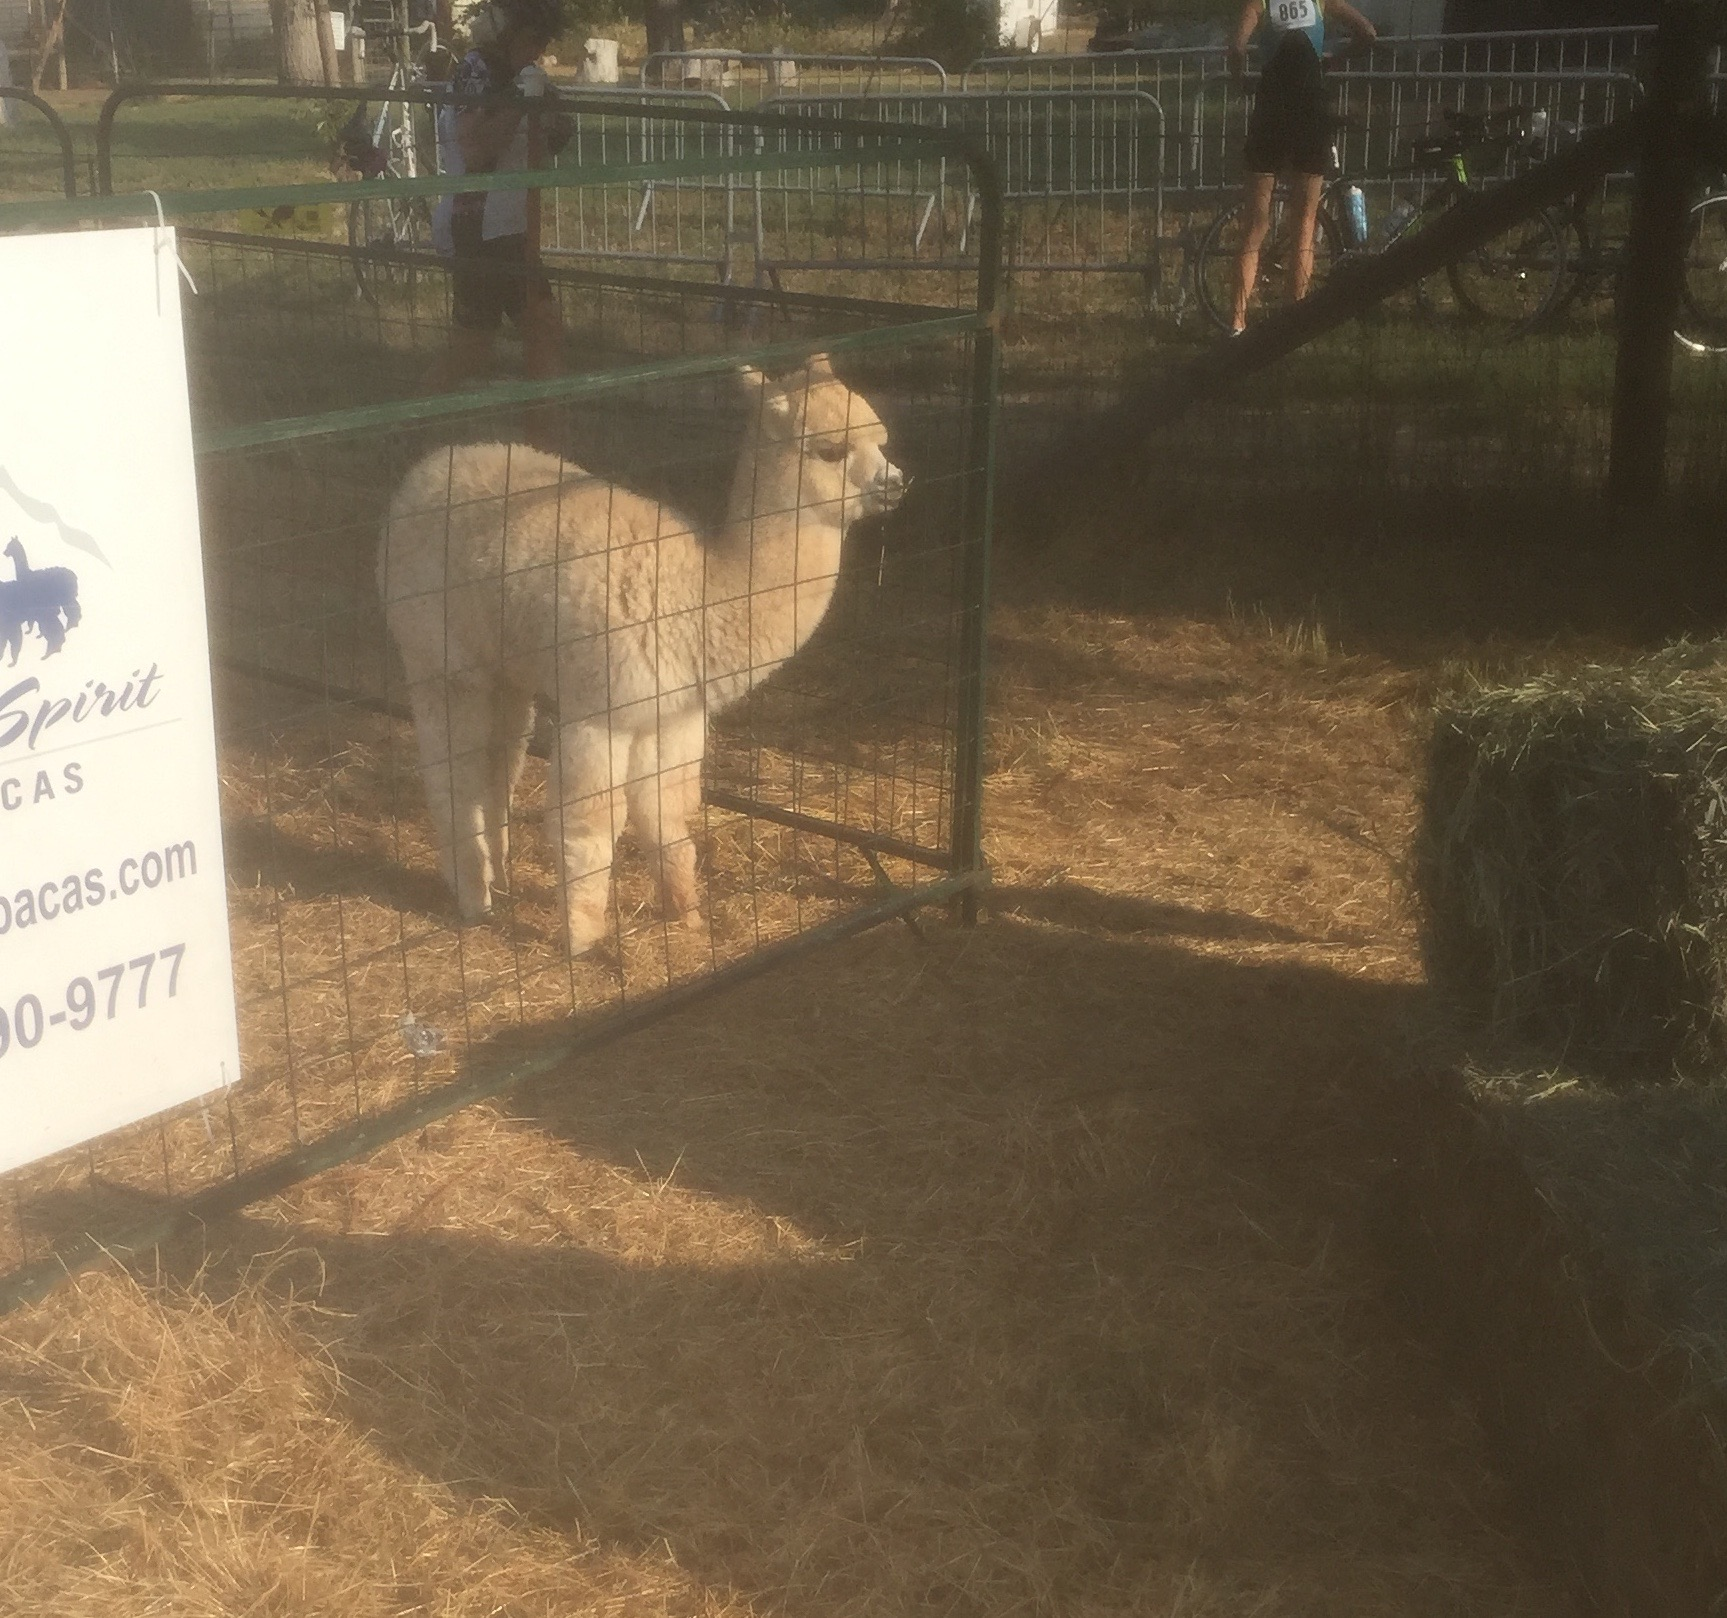 Baby llama. Please excuse the fuzzy picture, sweaty camera lense. :/